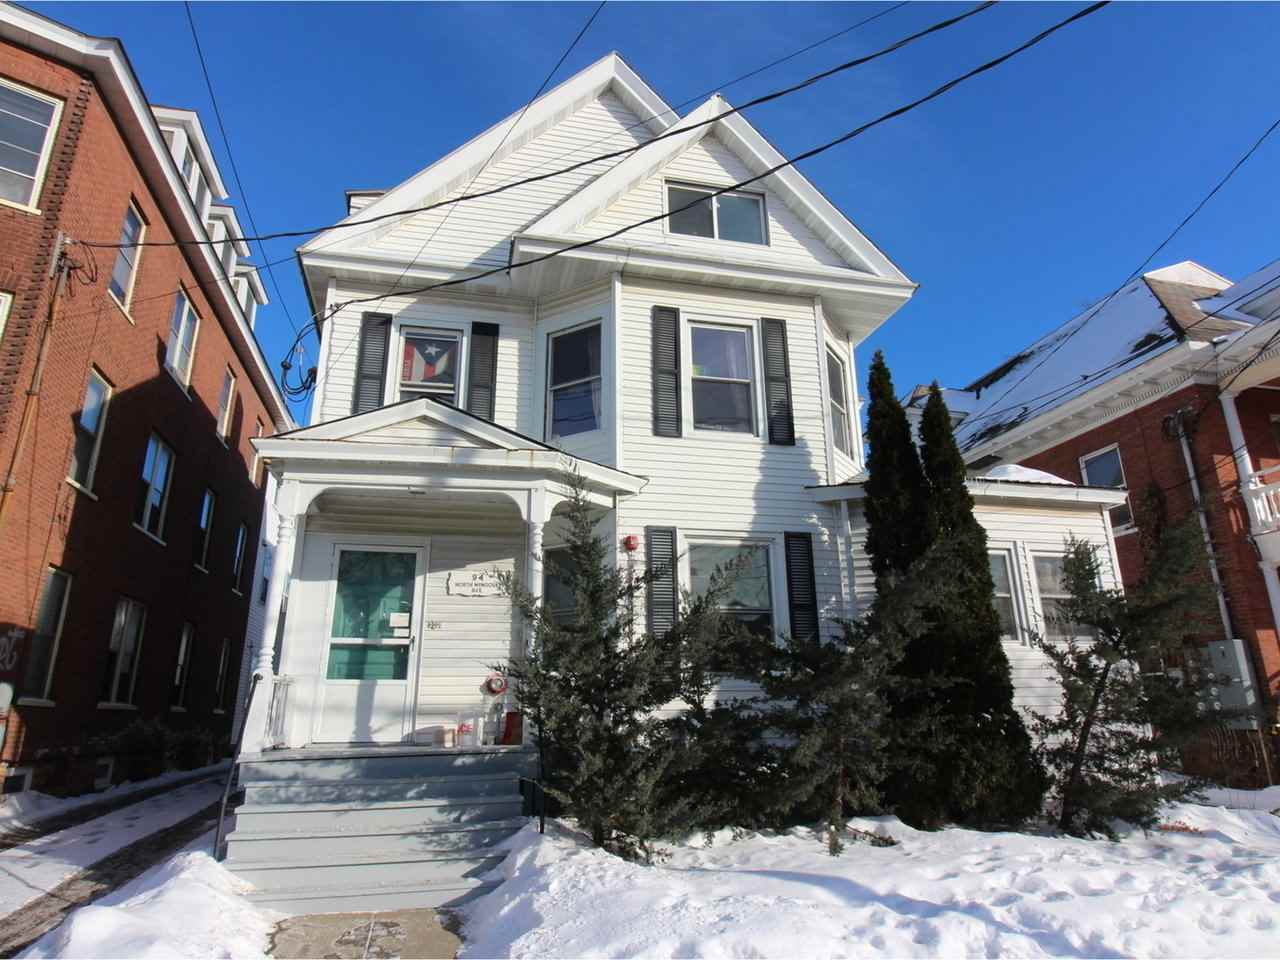 Prime Burlington Multi-Family Opportunity. Located just a couple of blocks from Church Street. 8 prime apartments in two buildings. Easy to rent 1 bedroom, 3 bedroom and studio apartments. Well maintained buildings with a sprinkler system and plenty of parking. Tenants love being so close to  downtown, the waterfront, colleges and hospital.